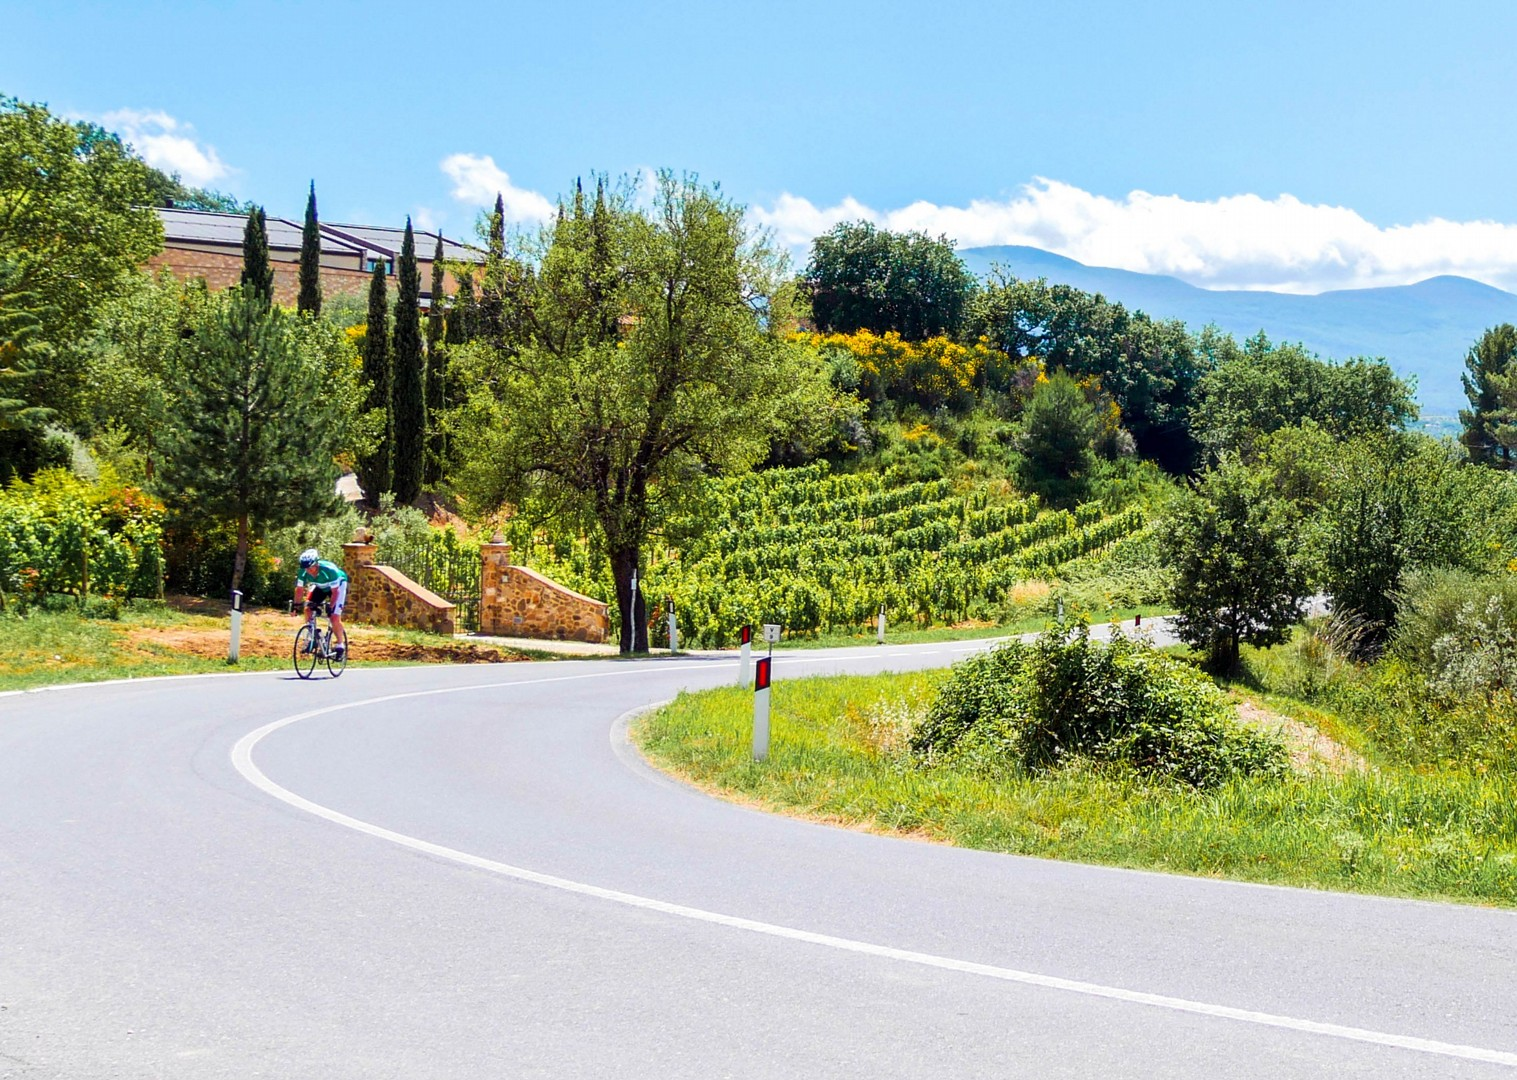 Ian-2.jpg - Italy - Tuscany - Giro della Toscana - Self-Guided Road Cycling Holiday - Road Cycling